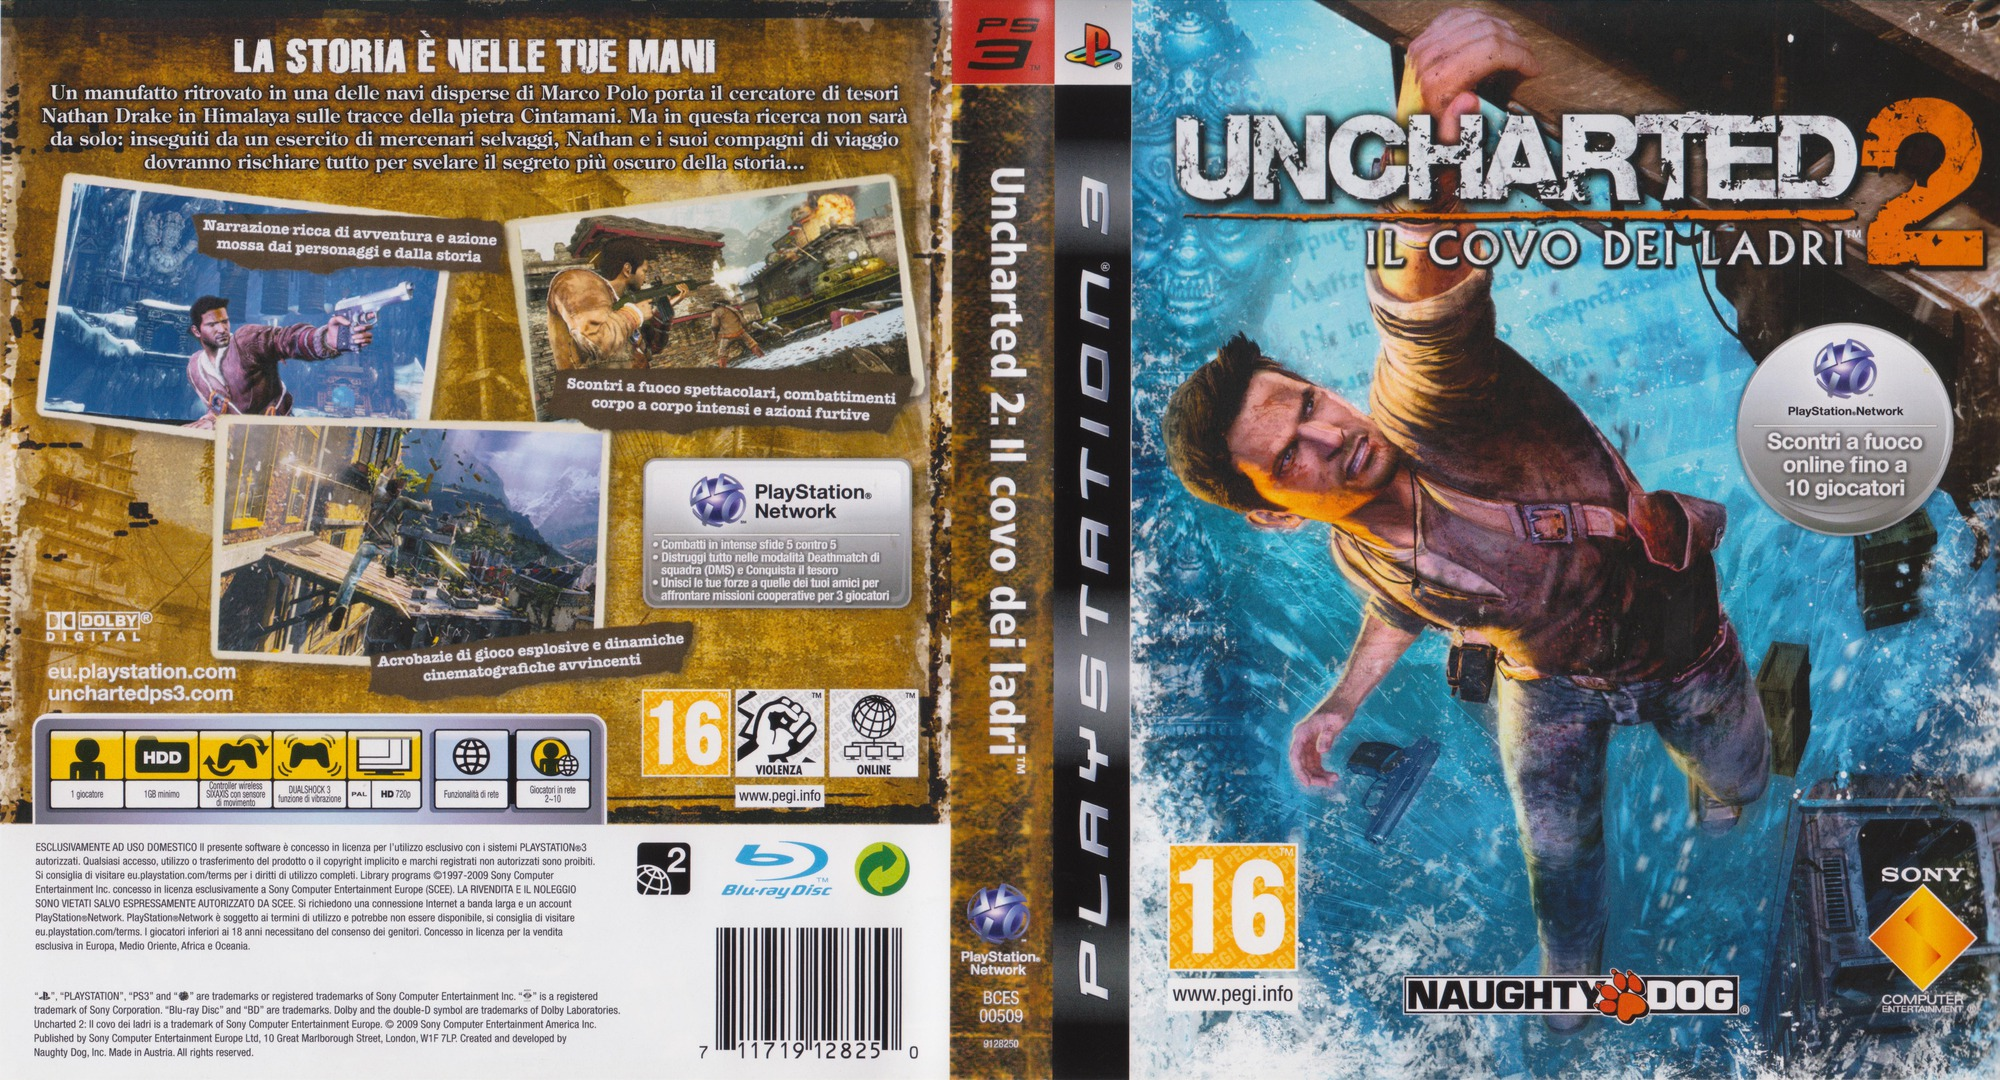 Uncharted 2: Il covo dei ladri PS3 coverfullHQ (BCES00509)